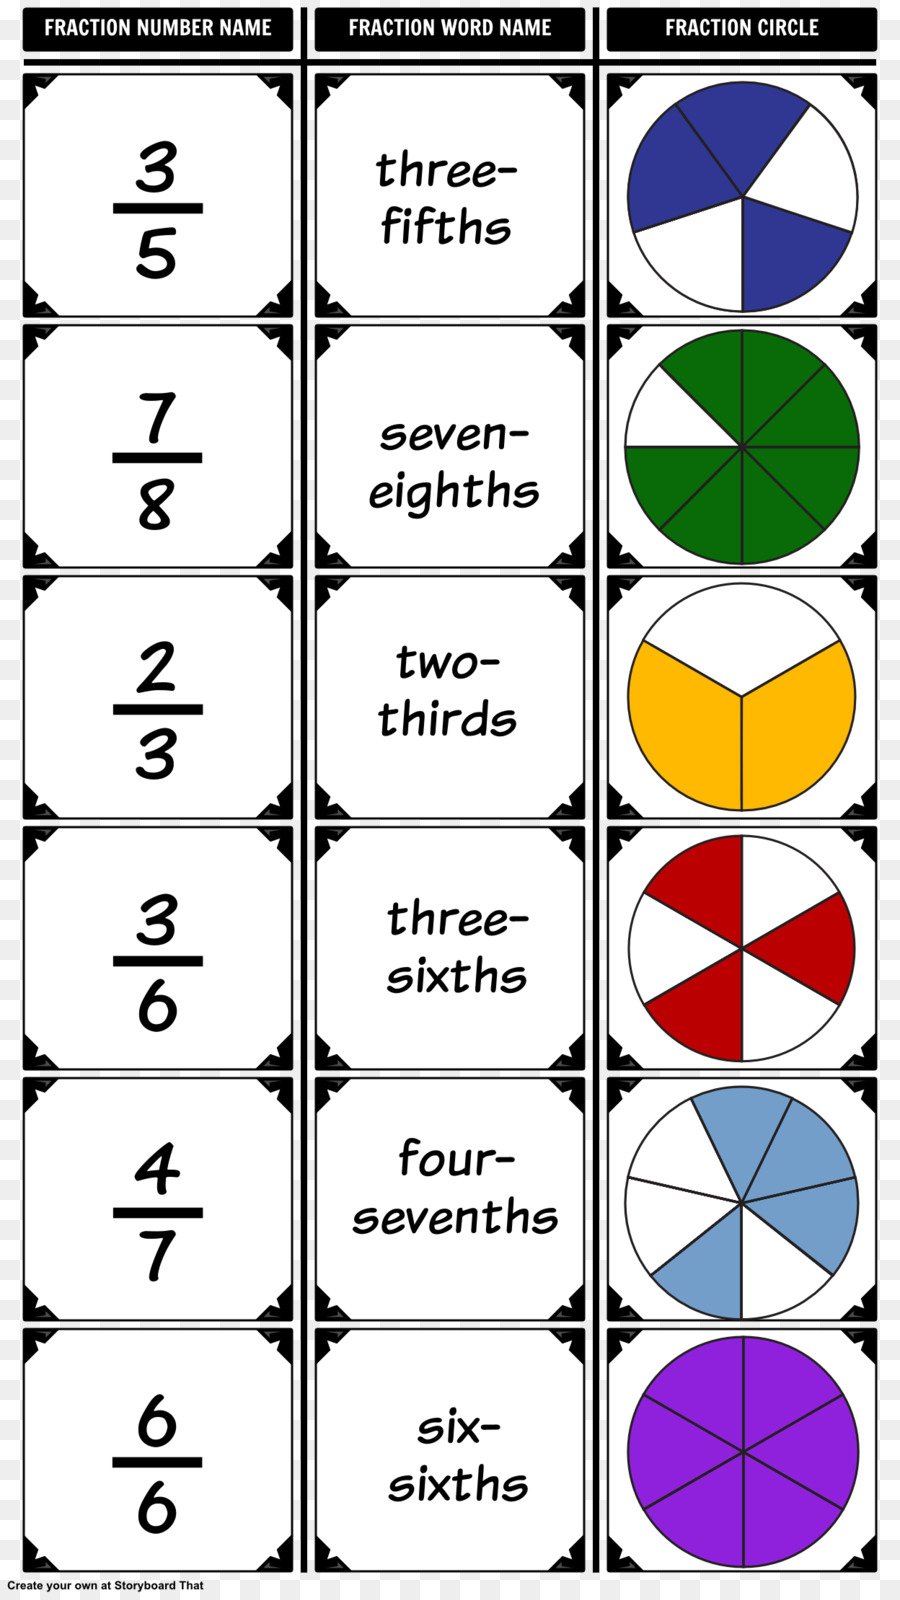 Fraction clipart word. Number names bars